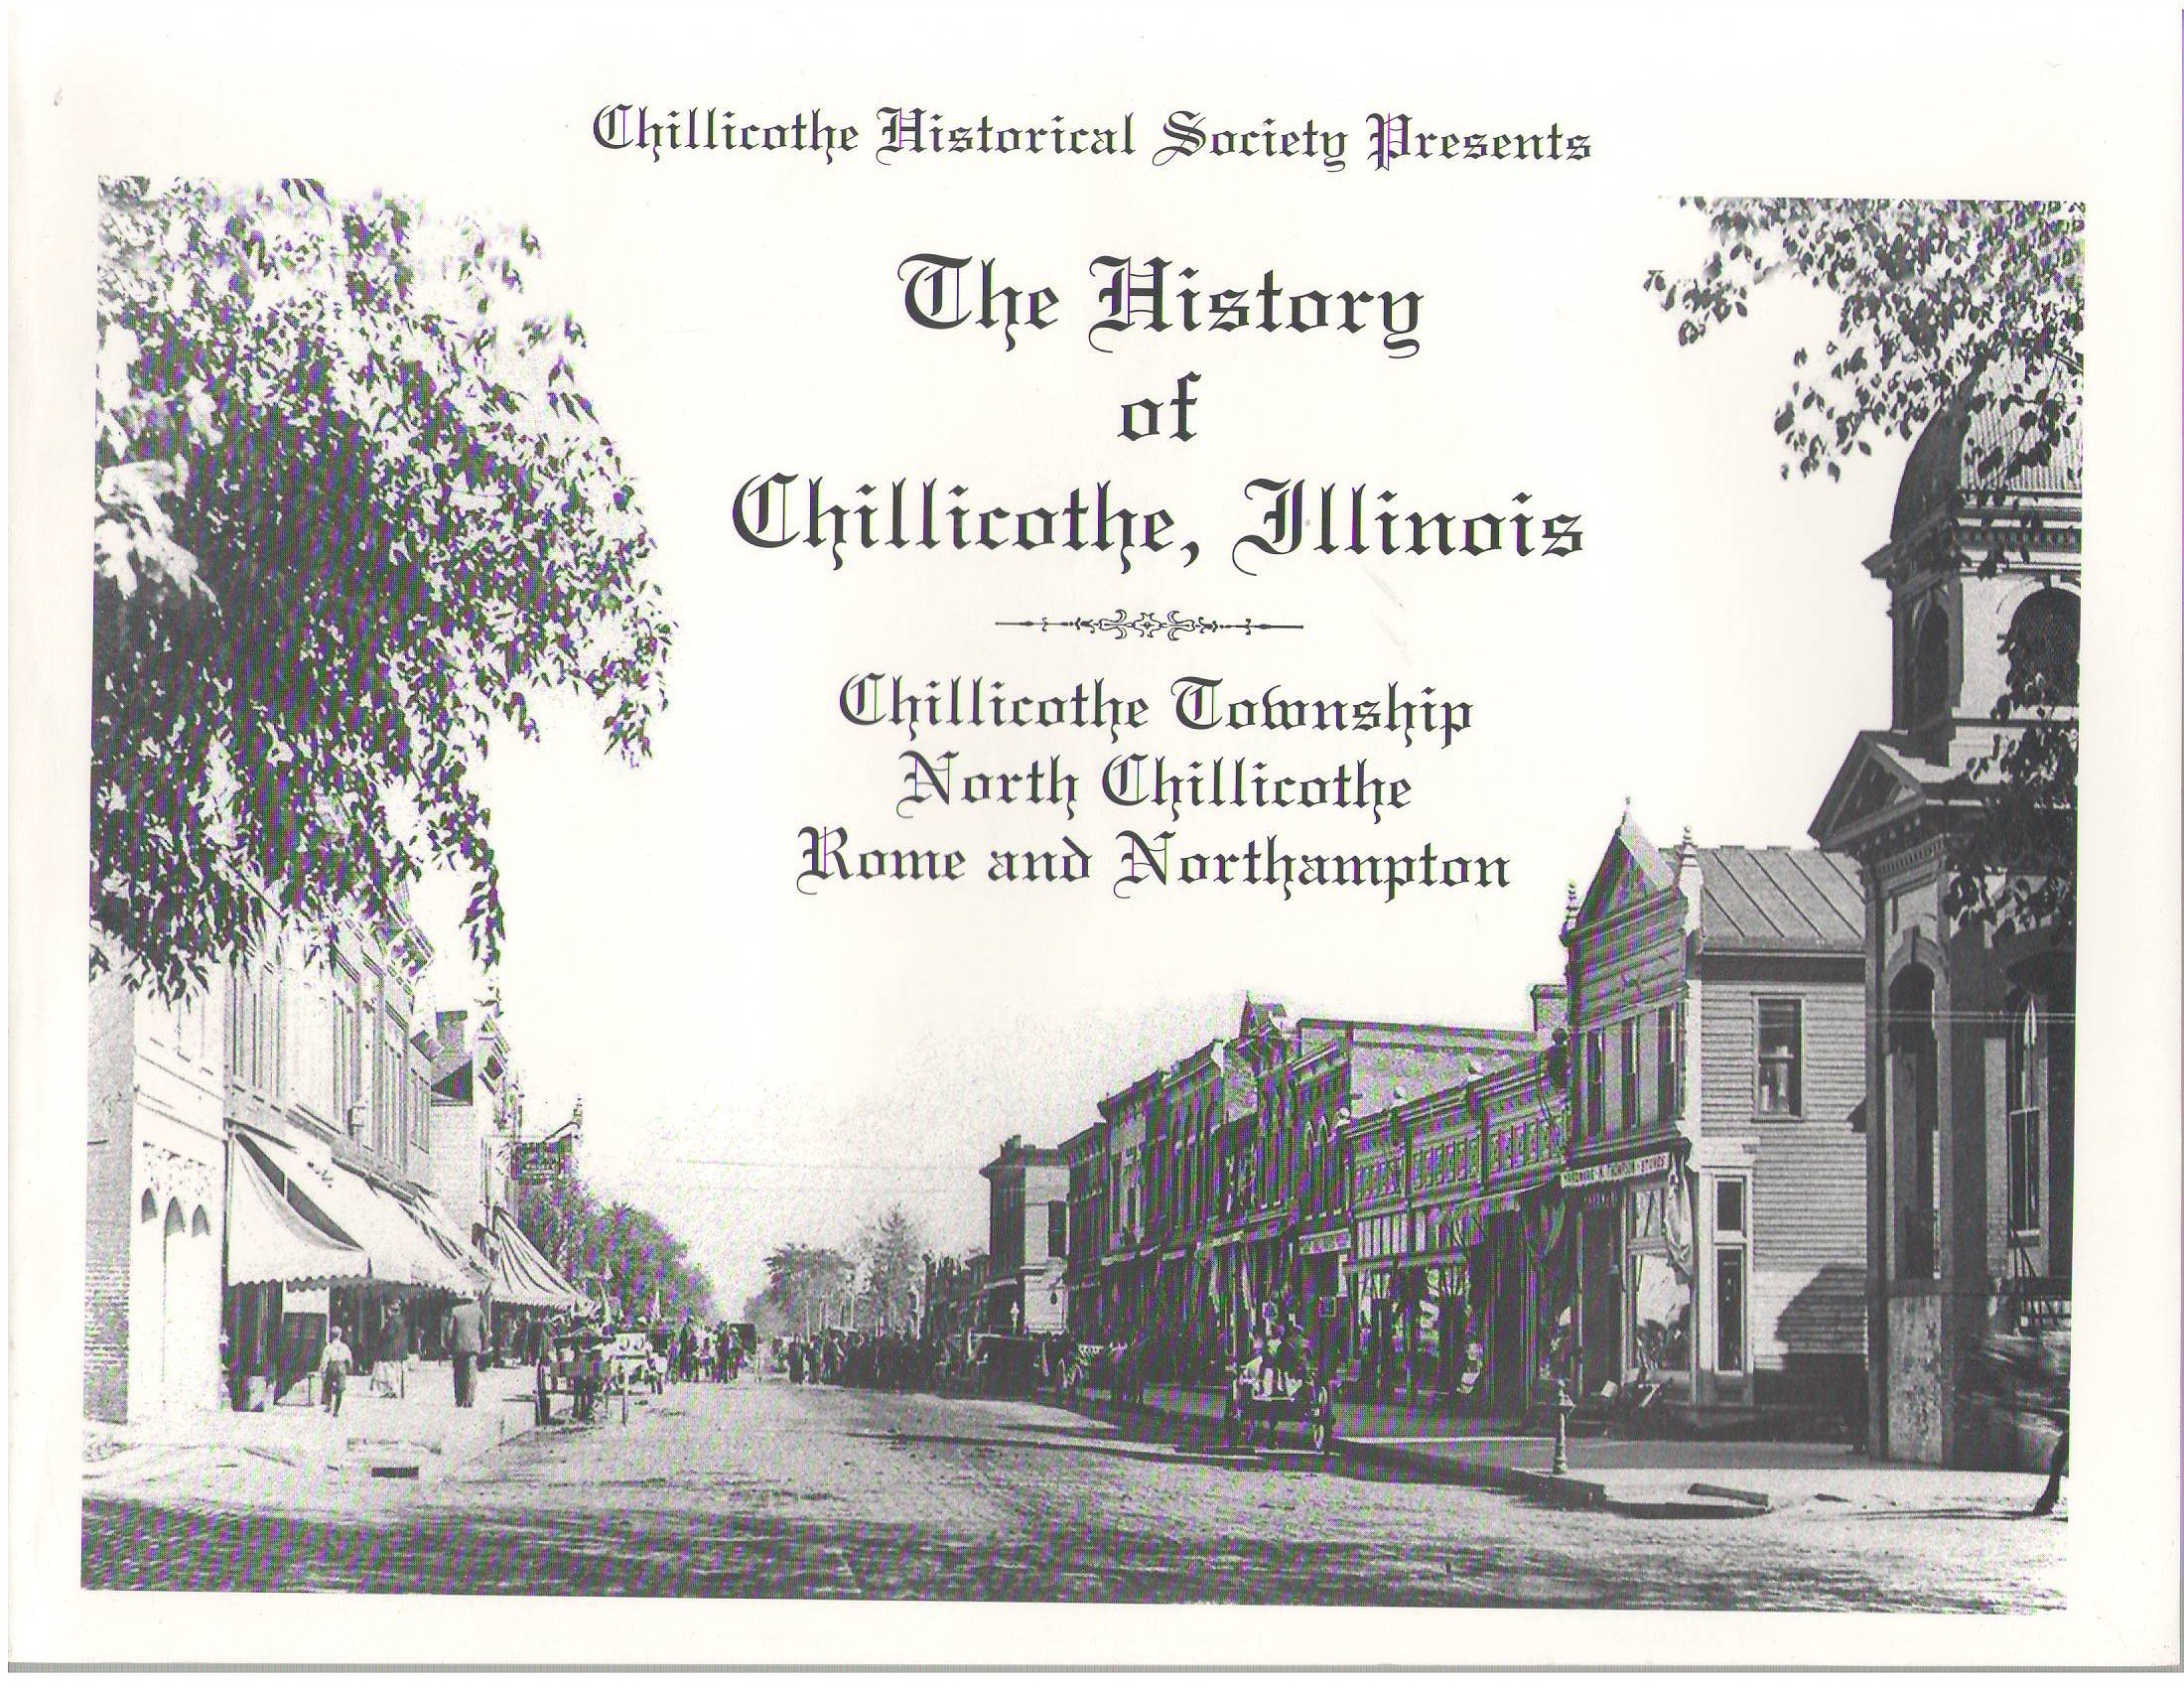 The History of Chillicothe Illinois Chillicothe Township North